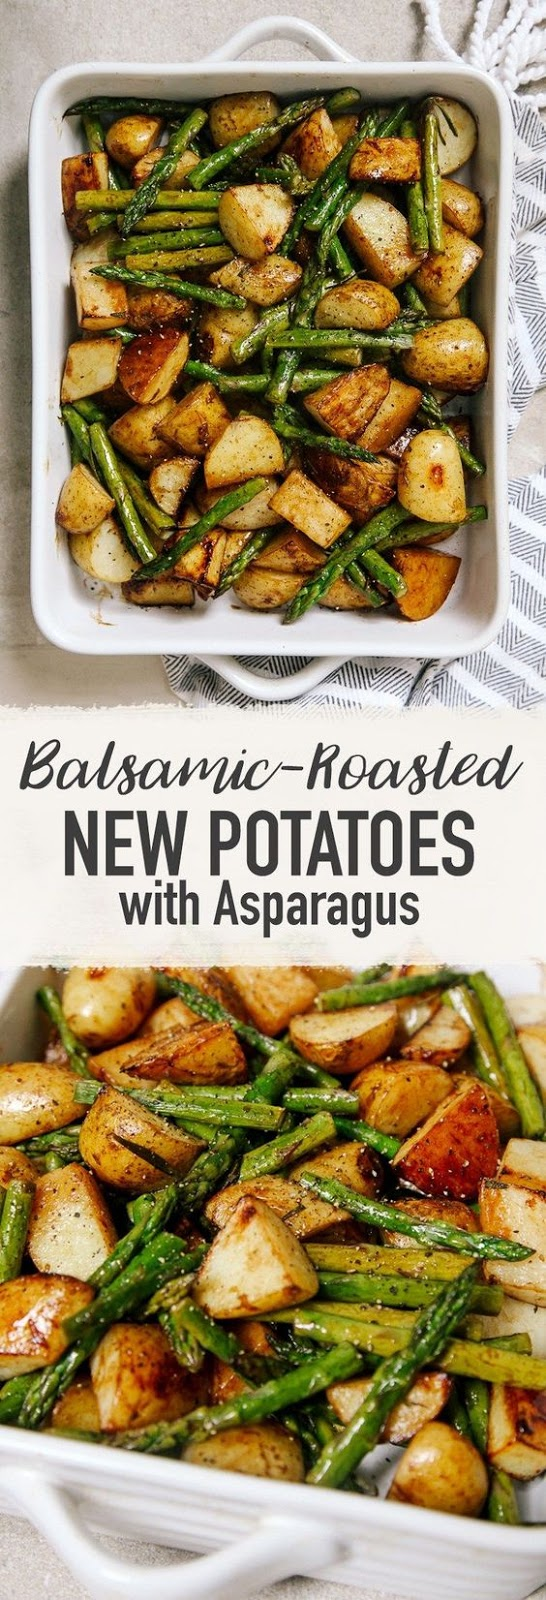 BALSAMIC ROASTED NEW POTATOES WITH ASPARAGUS #balsamic #roasted #potatoes #asparagus #vegan #veganrecipes #veggies #vegetarianrecipes